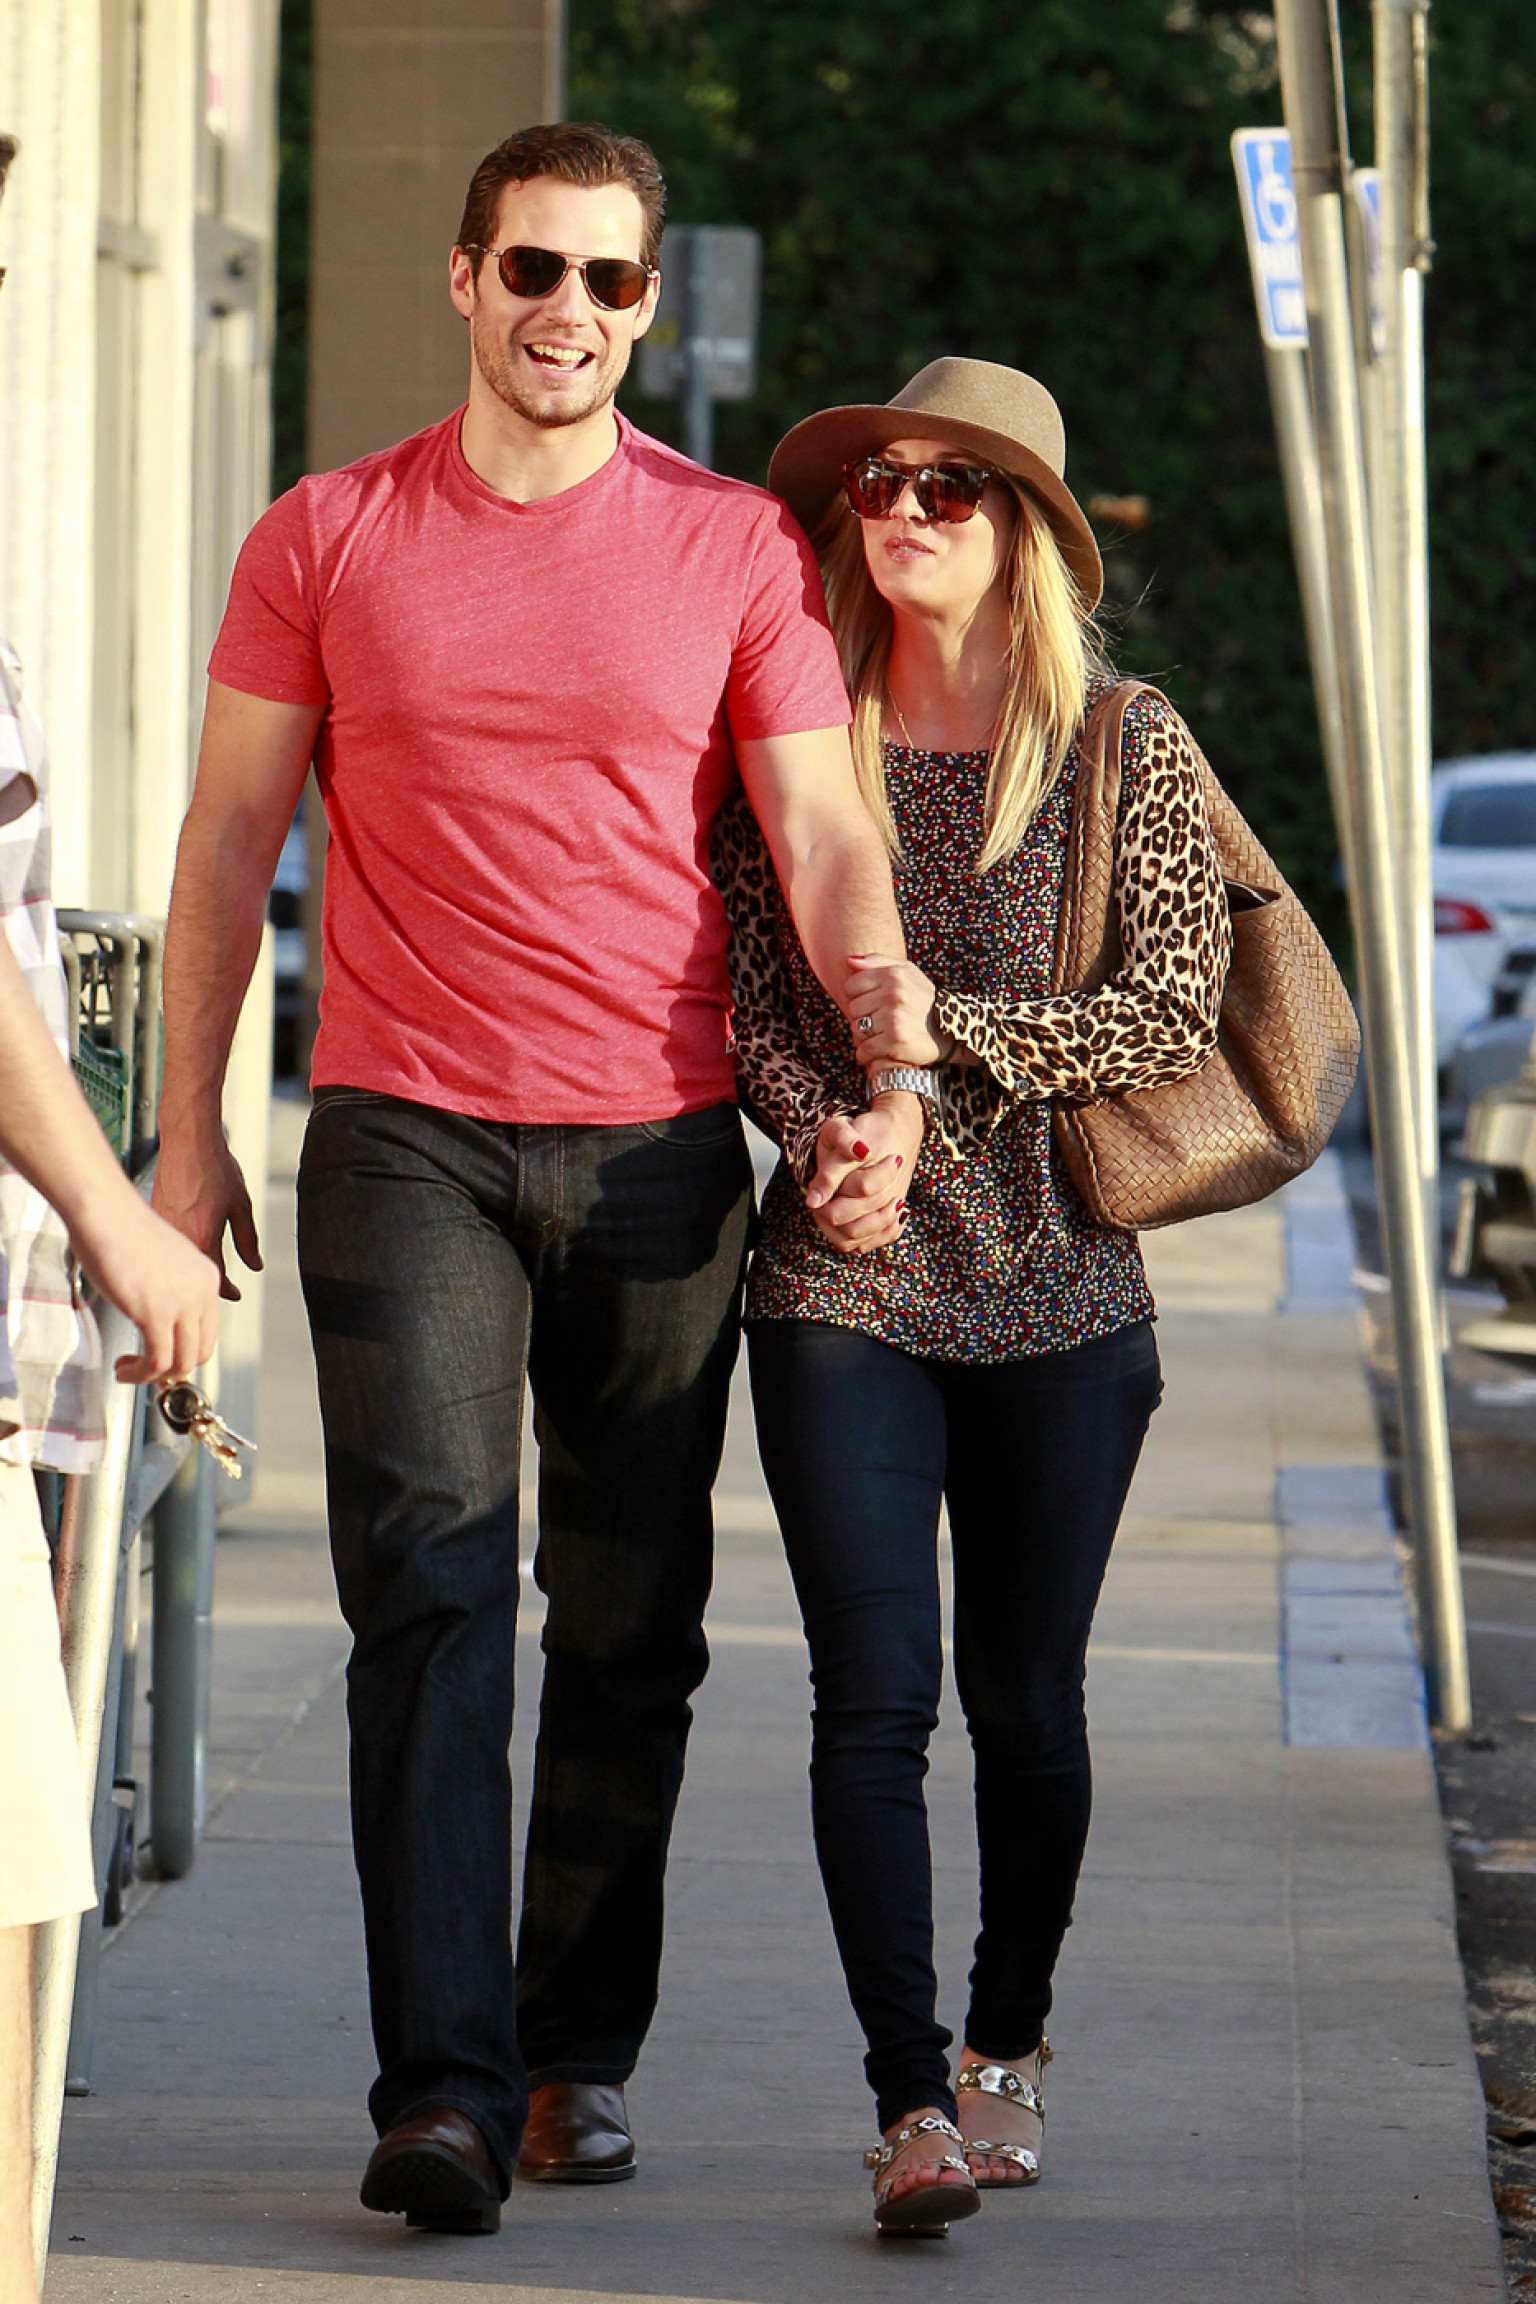 Henry Cavill, Kaley Cuoco Hold Hands In Los Angeles (PHOTOS)